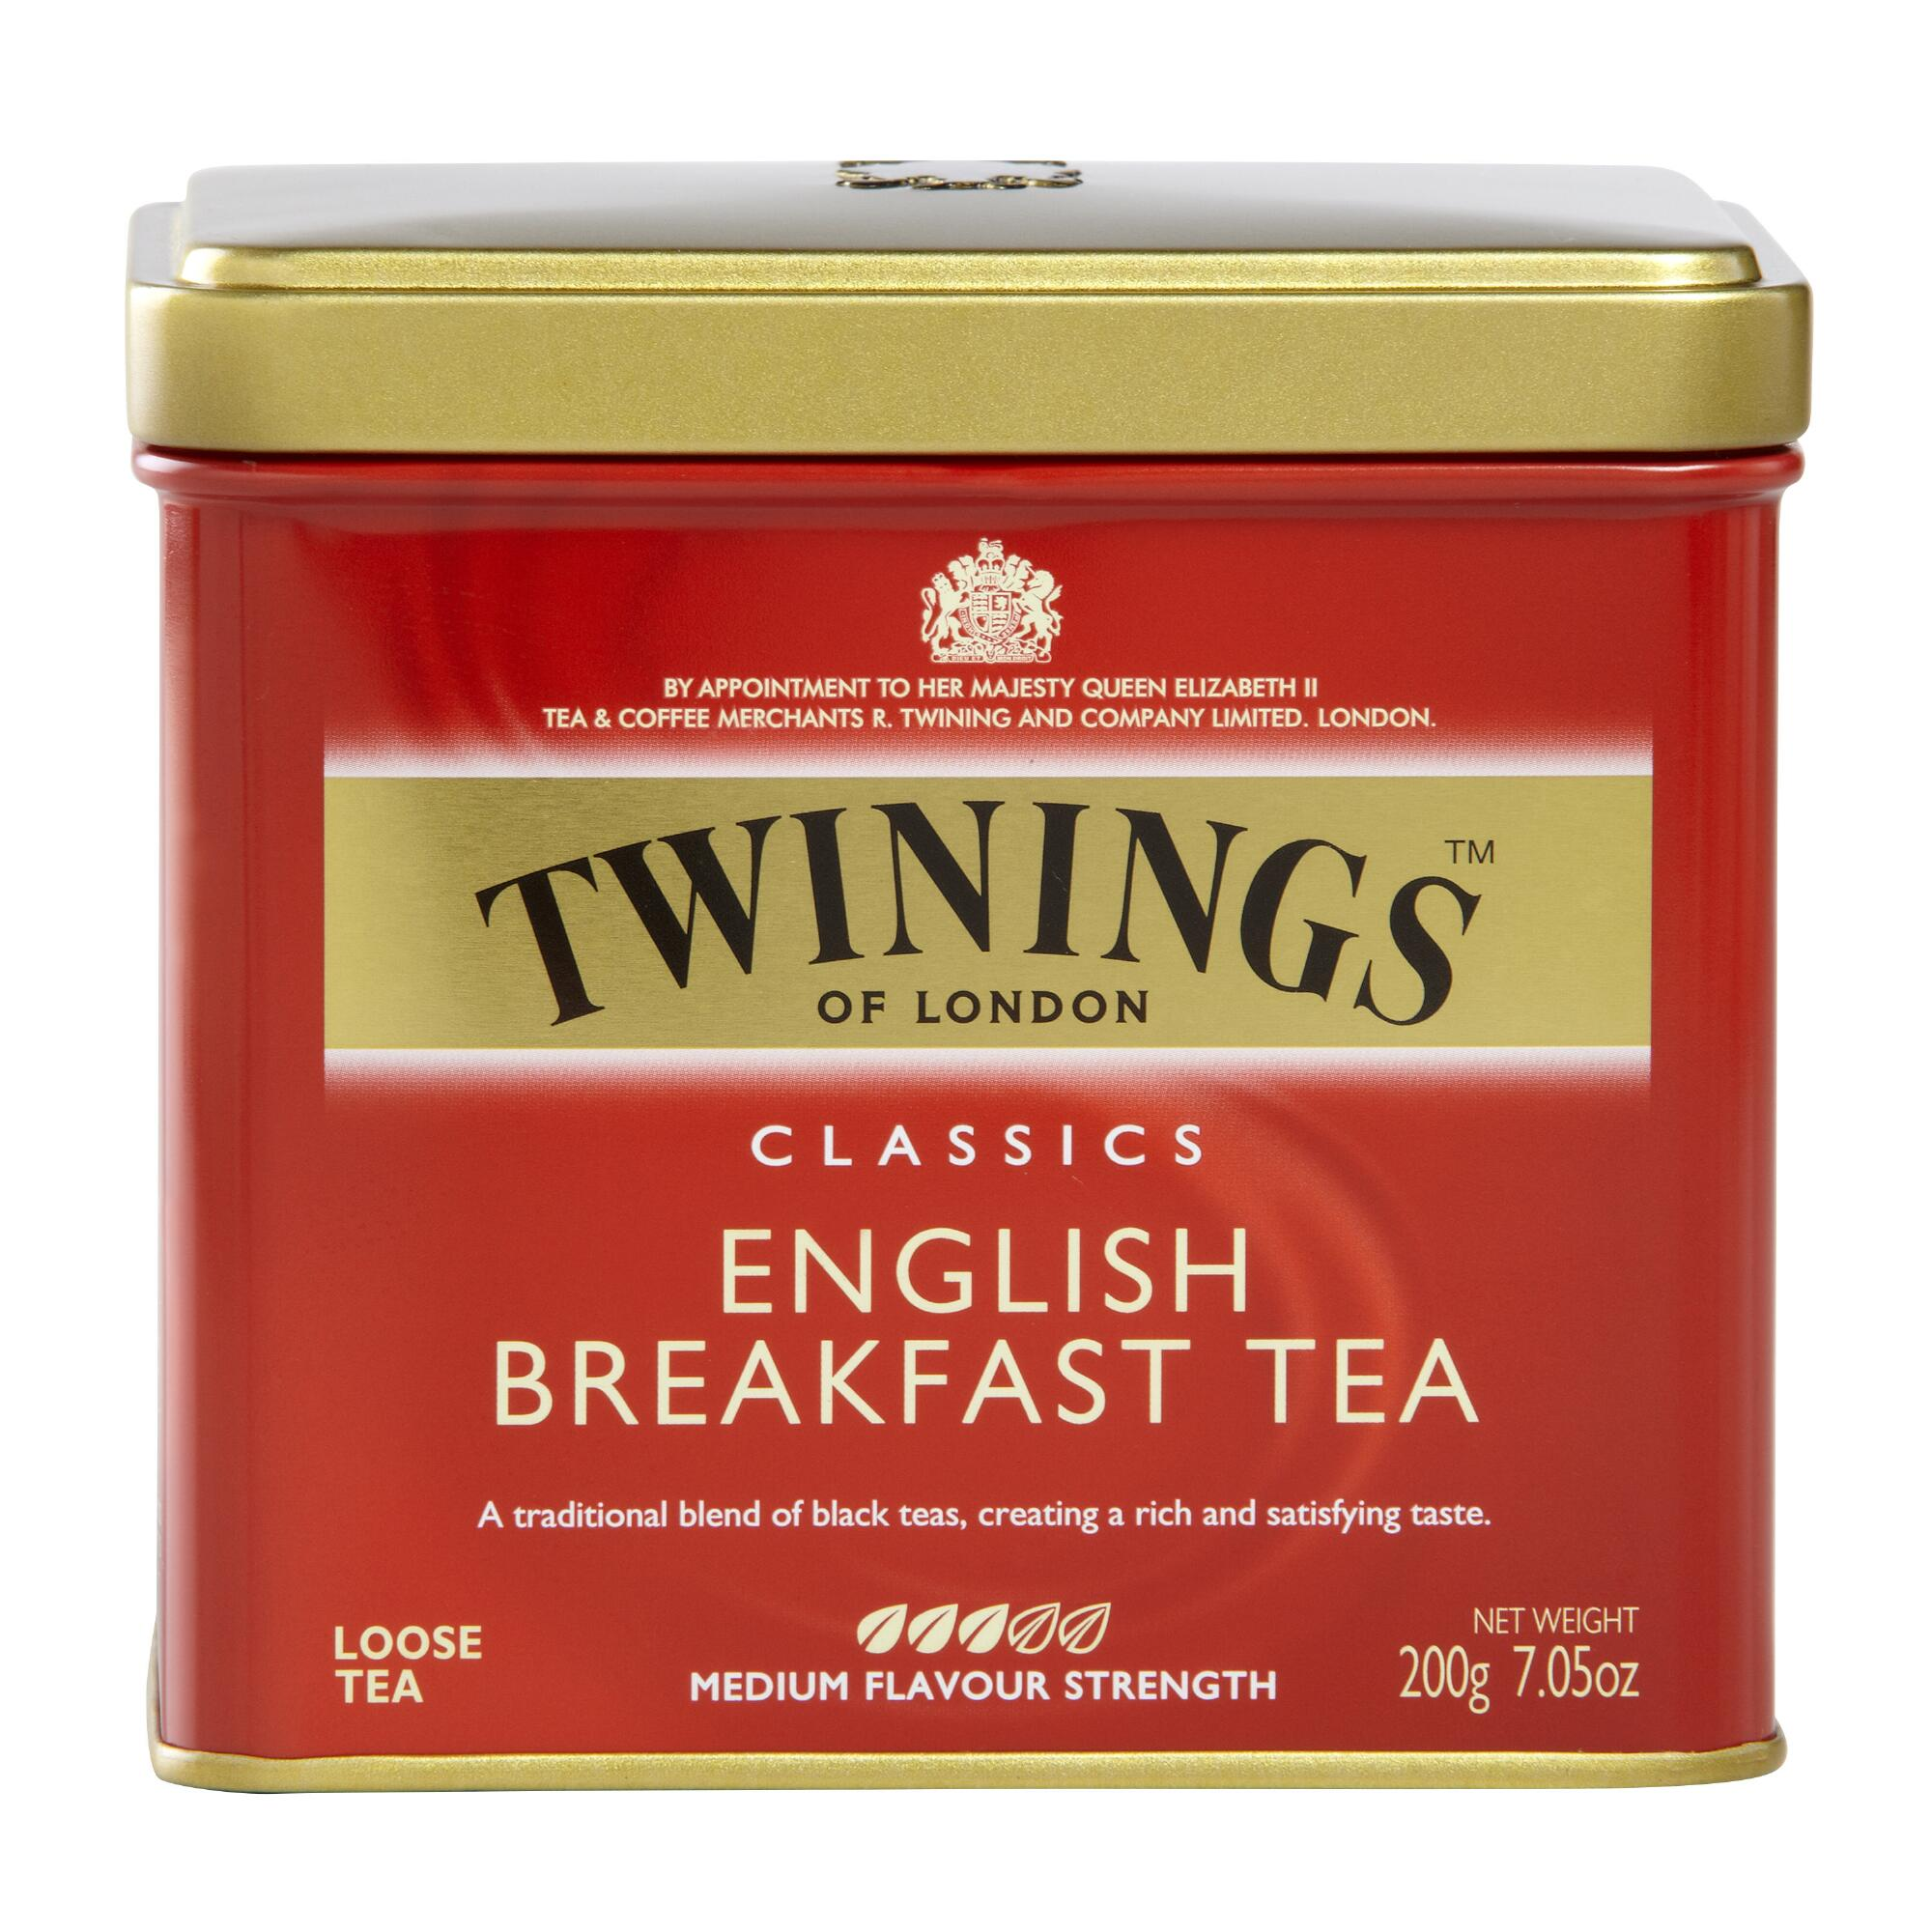 Twinings is a place where you can grow, learn, develop and succeed. Let's not forget to mention that you will also learn a lot about the wonderful world of tea along the way. Happy Tea Times.